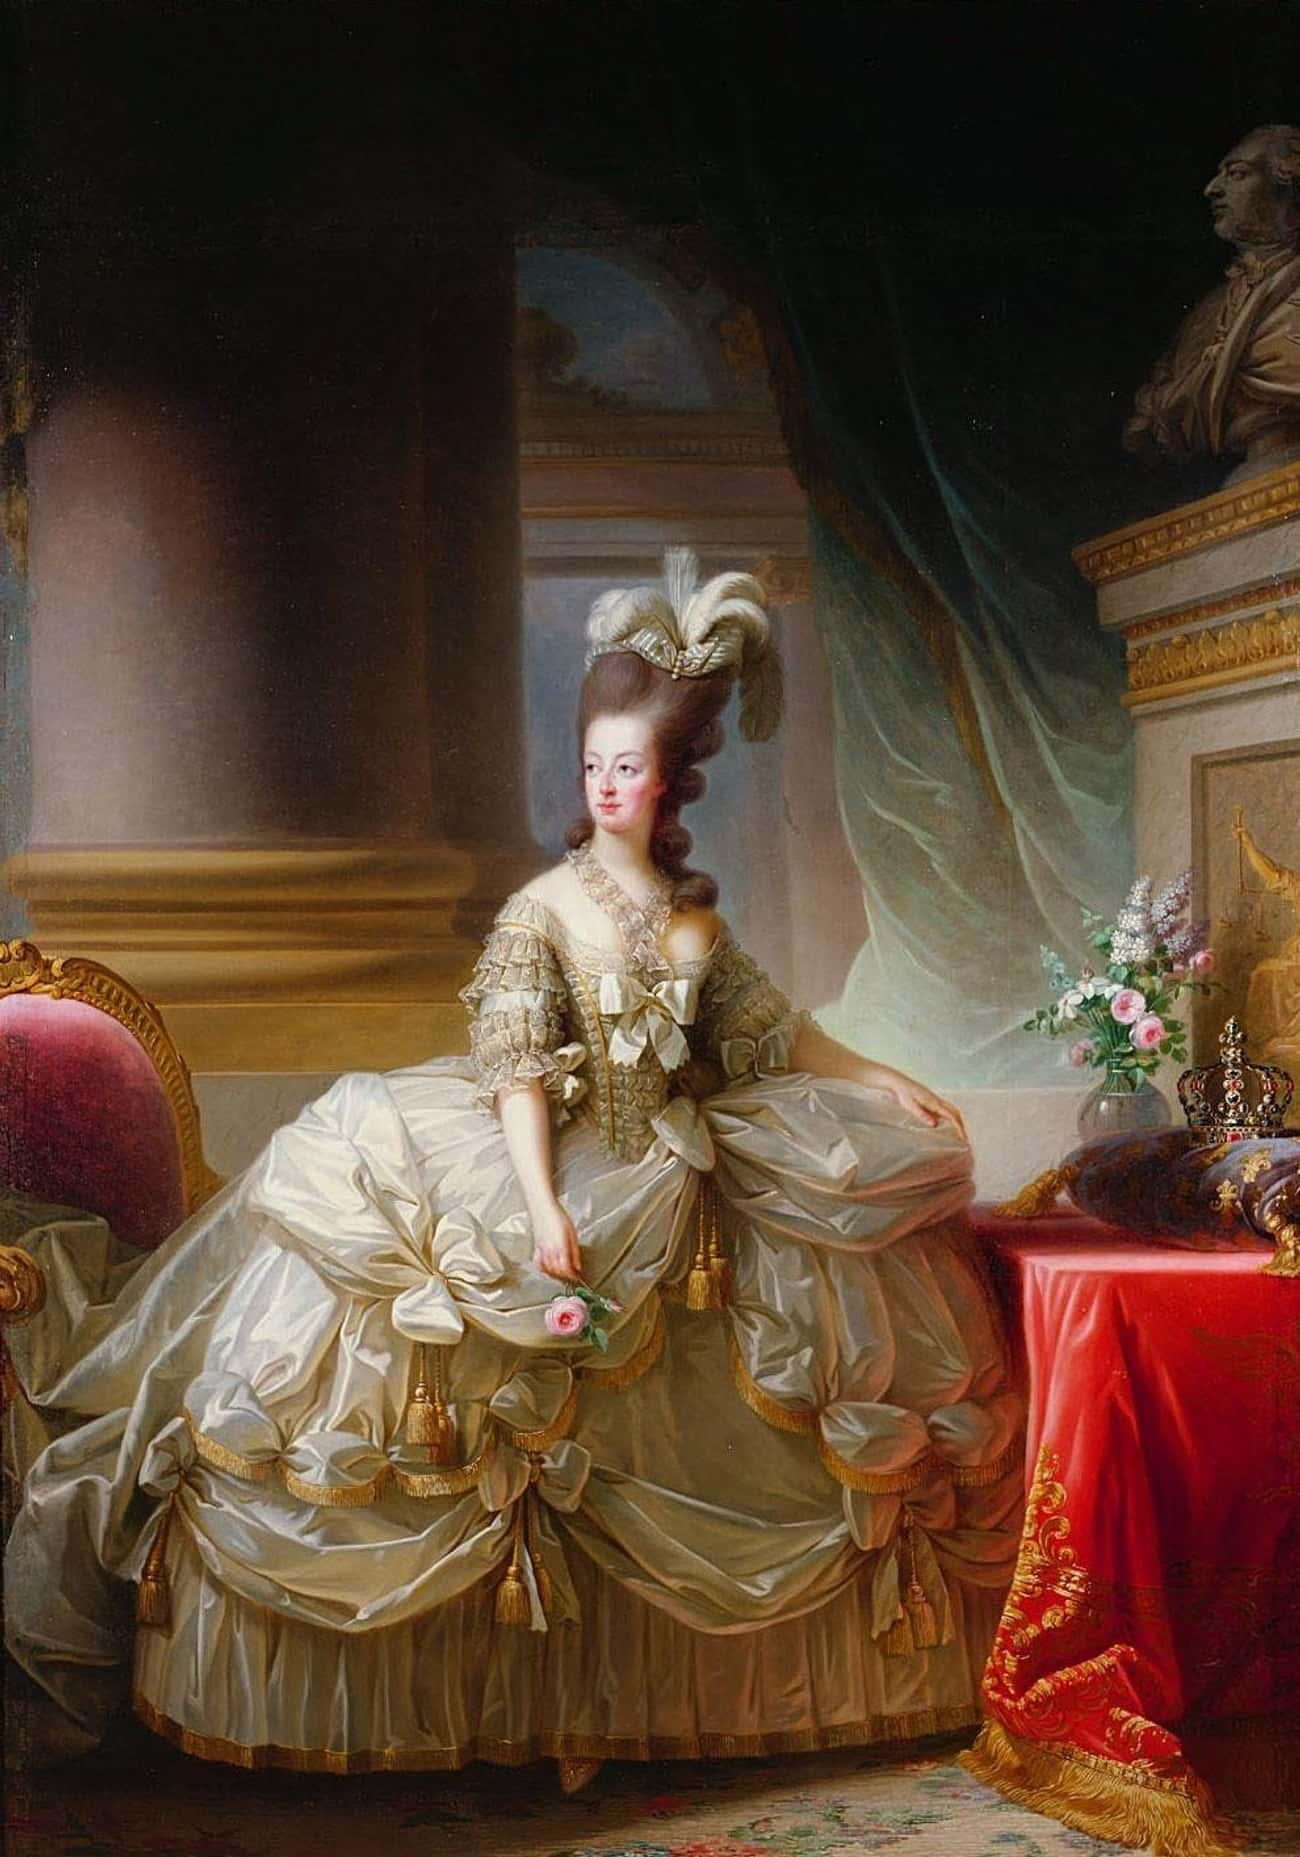 Marie Antoinette Never Said He is listed (or ranked) 1 on the list Marie Antoinette Was A Much Different Woman Than History Remembers